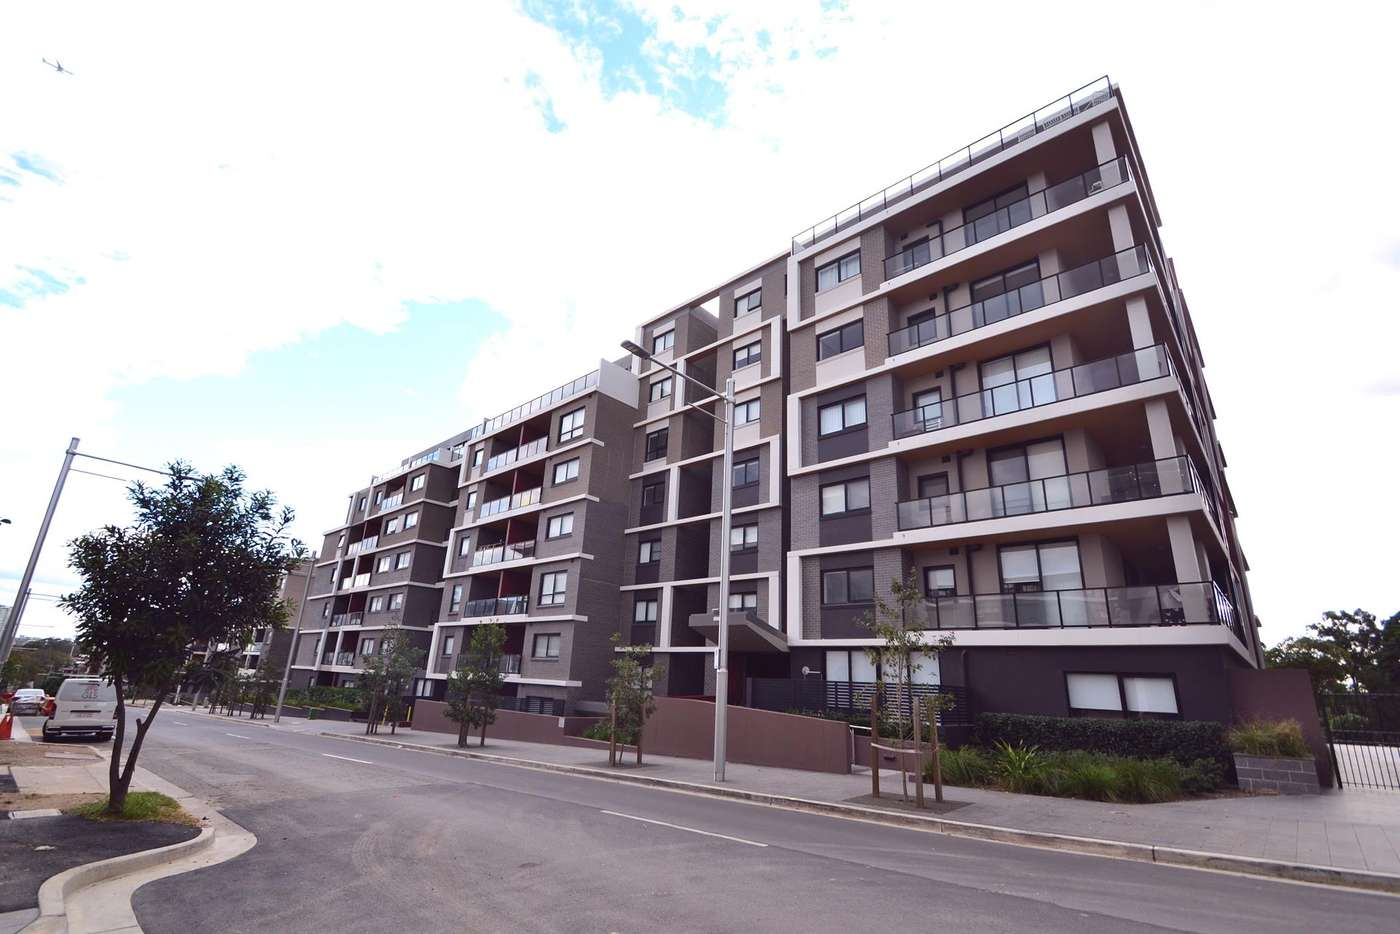 Main view of Homely apartment listing, 7095/2E Porter Street, Ryde NSW 2112